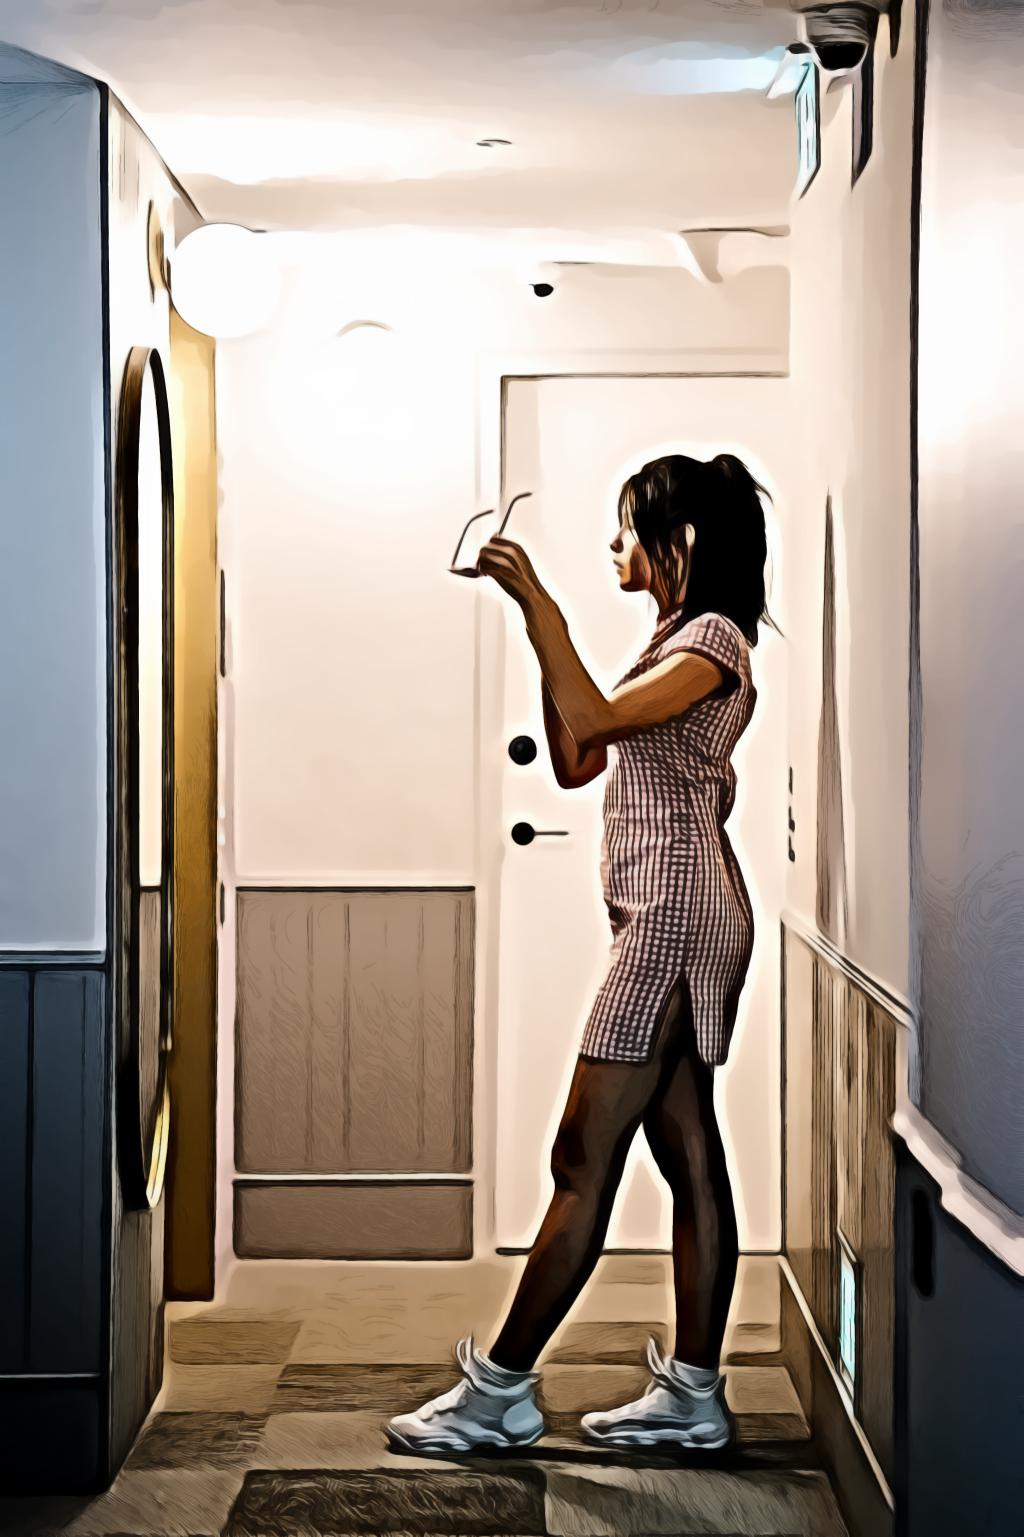 Woman standing in front of mirror holding sunglasses